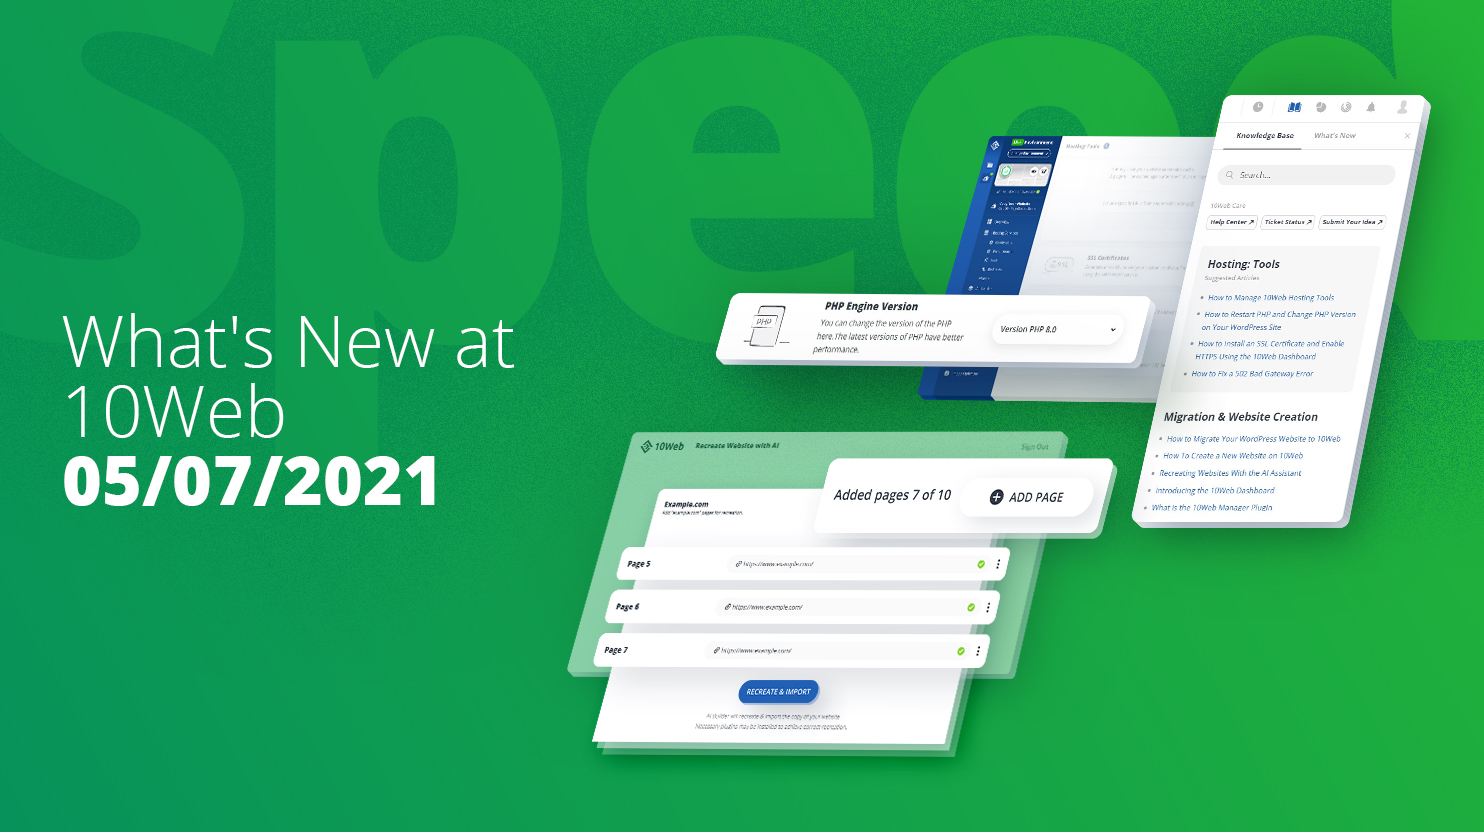 10Web dashboard images on green background. AI recreate and dashboard knowledge base